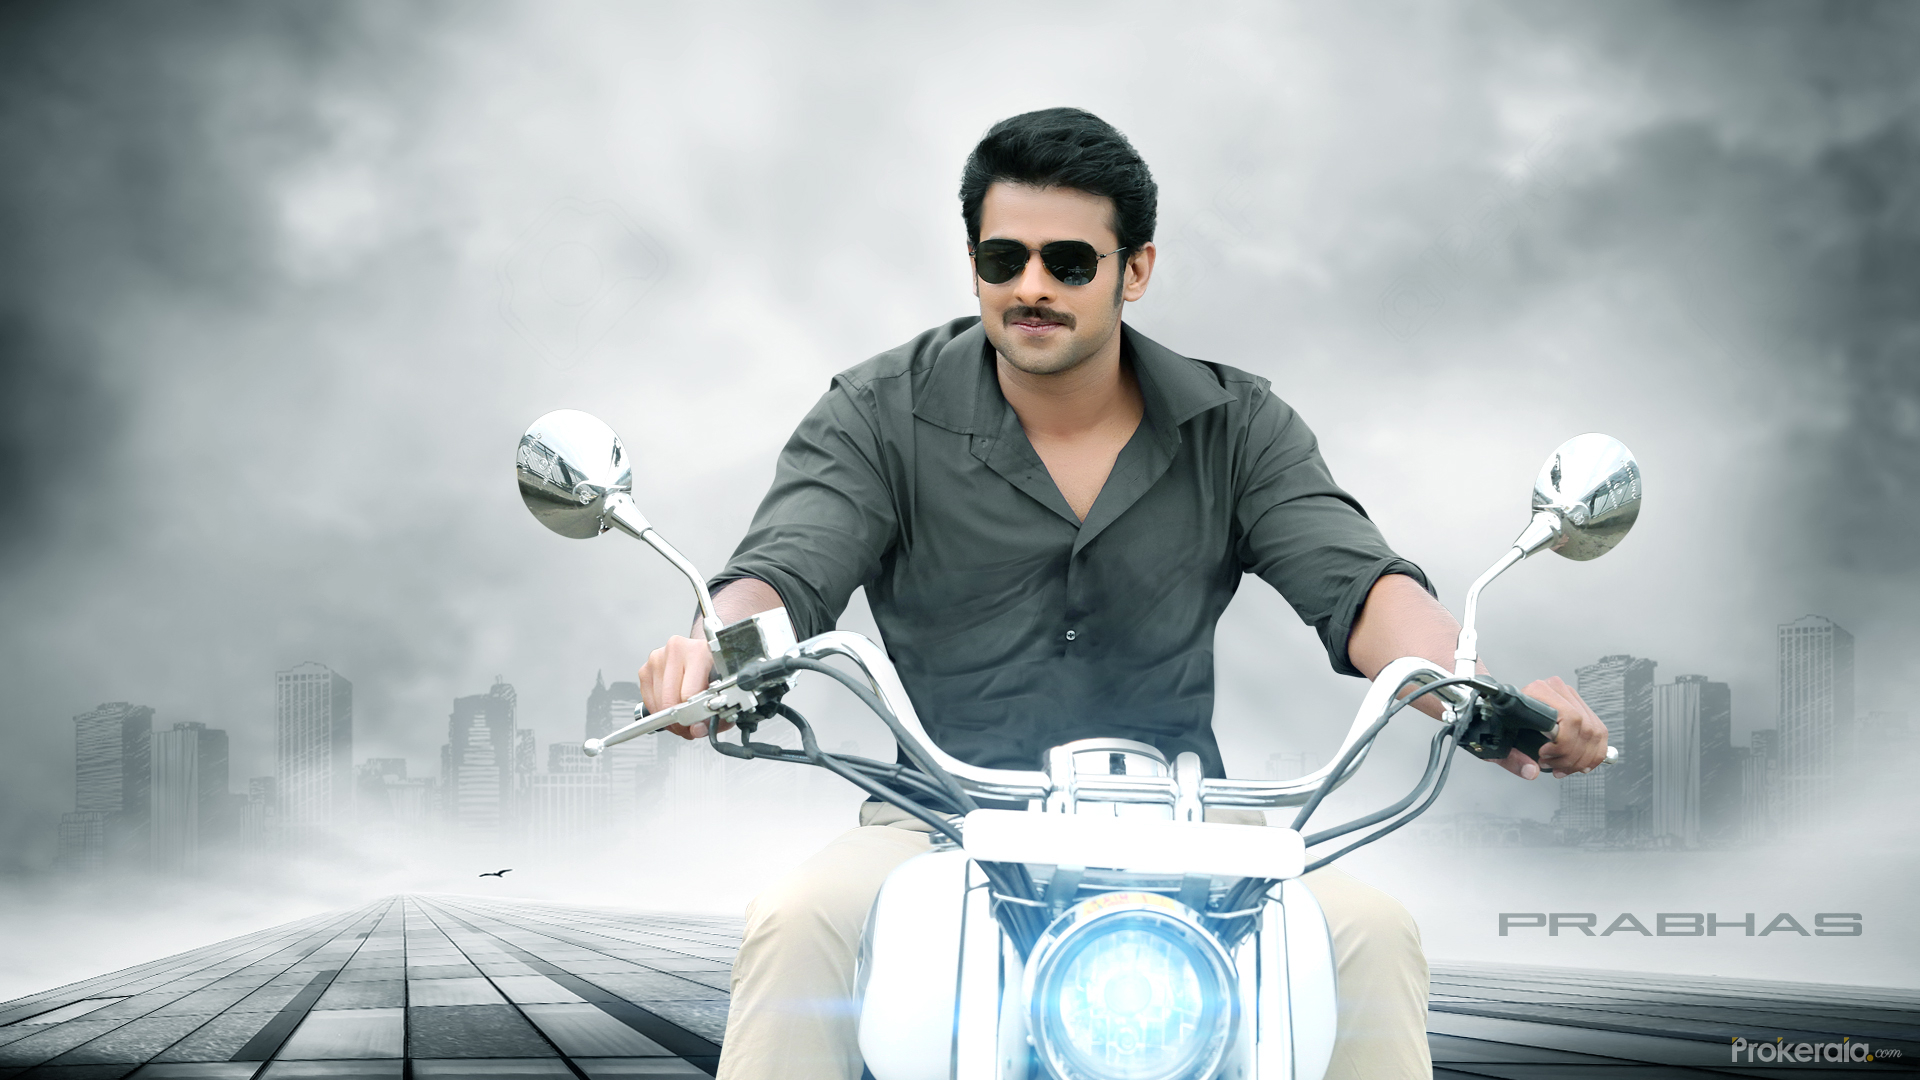 Download Prabhas Wallpaper # 1